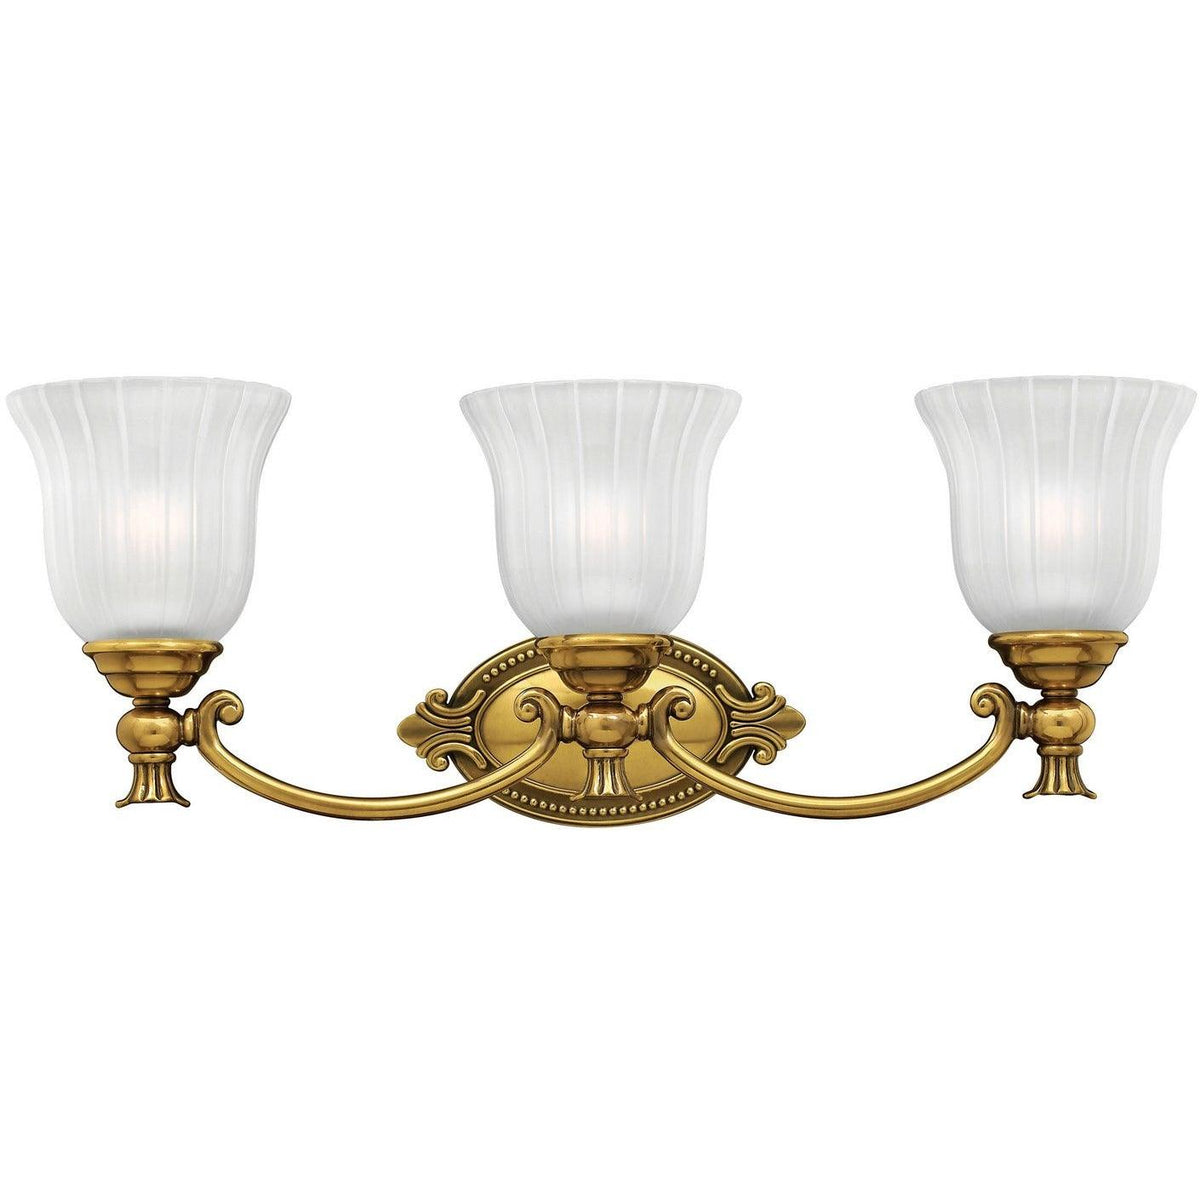 Hinkley Canada - 5583BB - Three Light Bath - Francoise - Burnished Brass